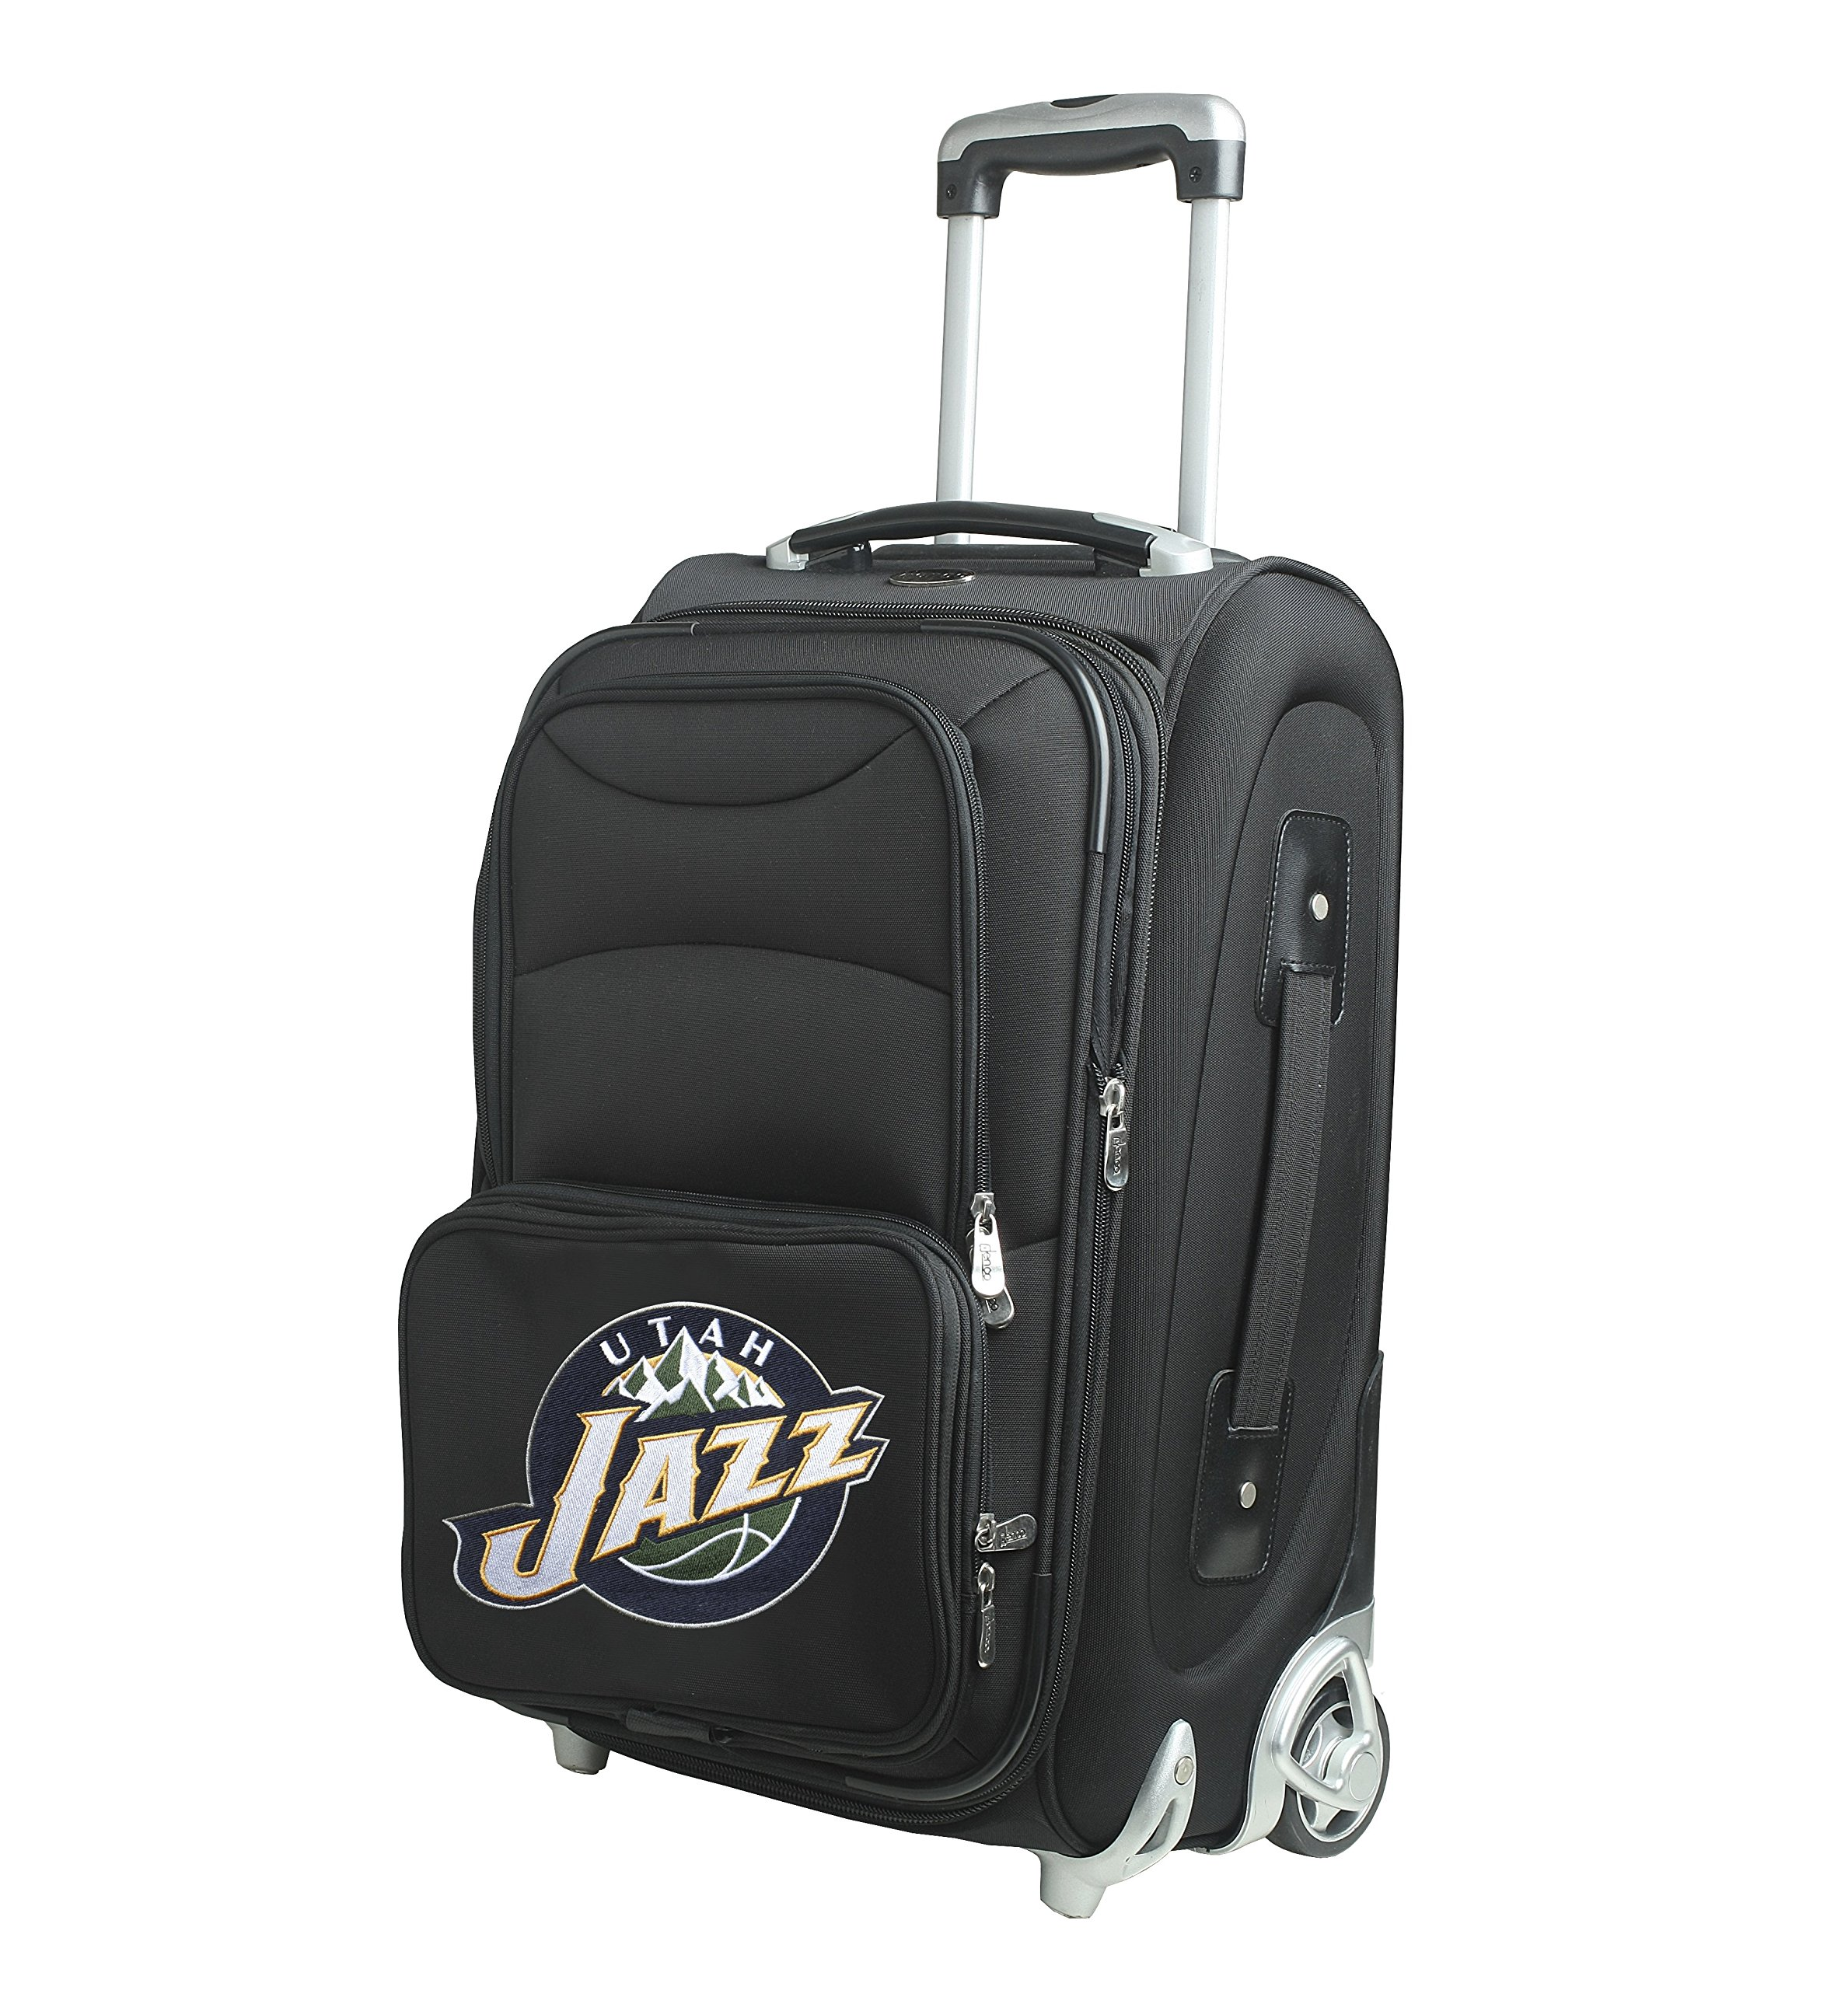 Denco NBA Utah Jazz In-Line Skate Wheel Carry-On Luggage, 21-Inch, Black